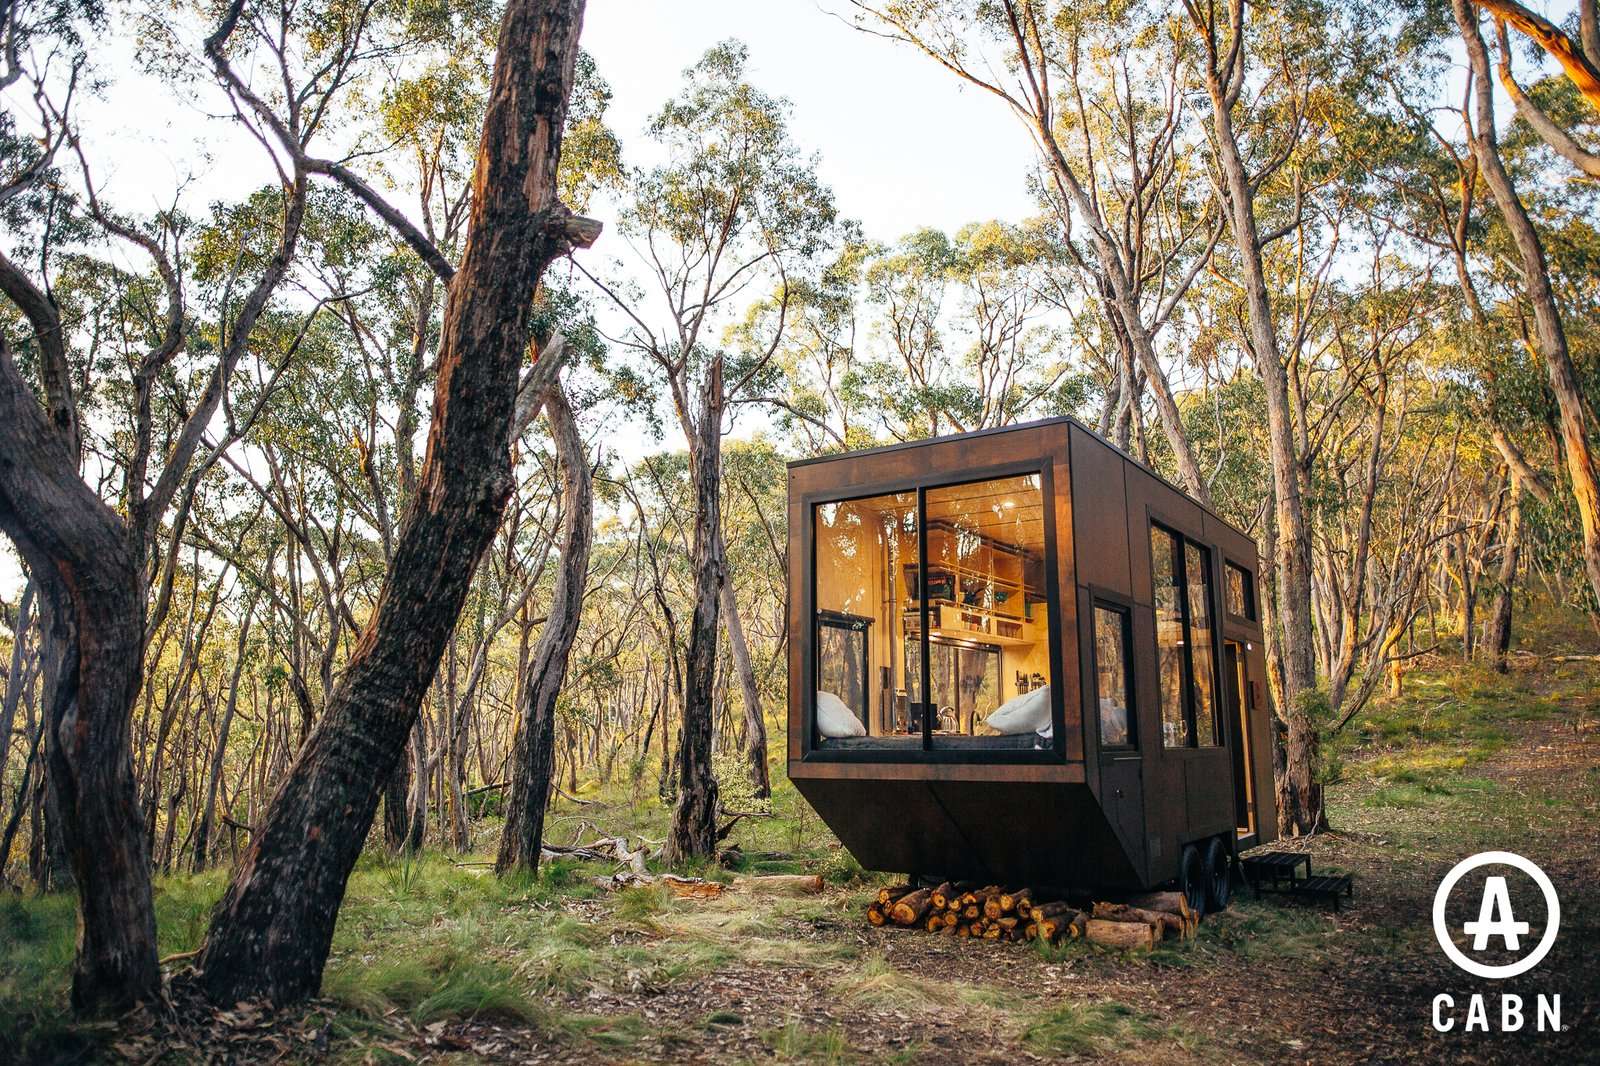 Exterior, Metal Siding Material, Small Home Building Type, Wood Siding Material, Flat RoofLine, Tiny Home Building Type, and Metal Roof Material A self sustainable, eco friendly, Australian made tiny home.  Best Photos from CABN